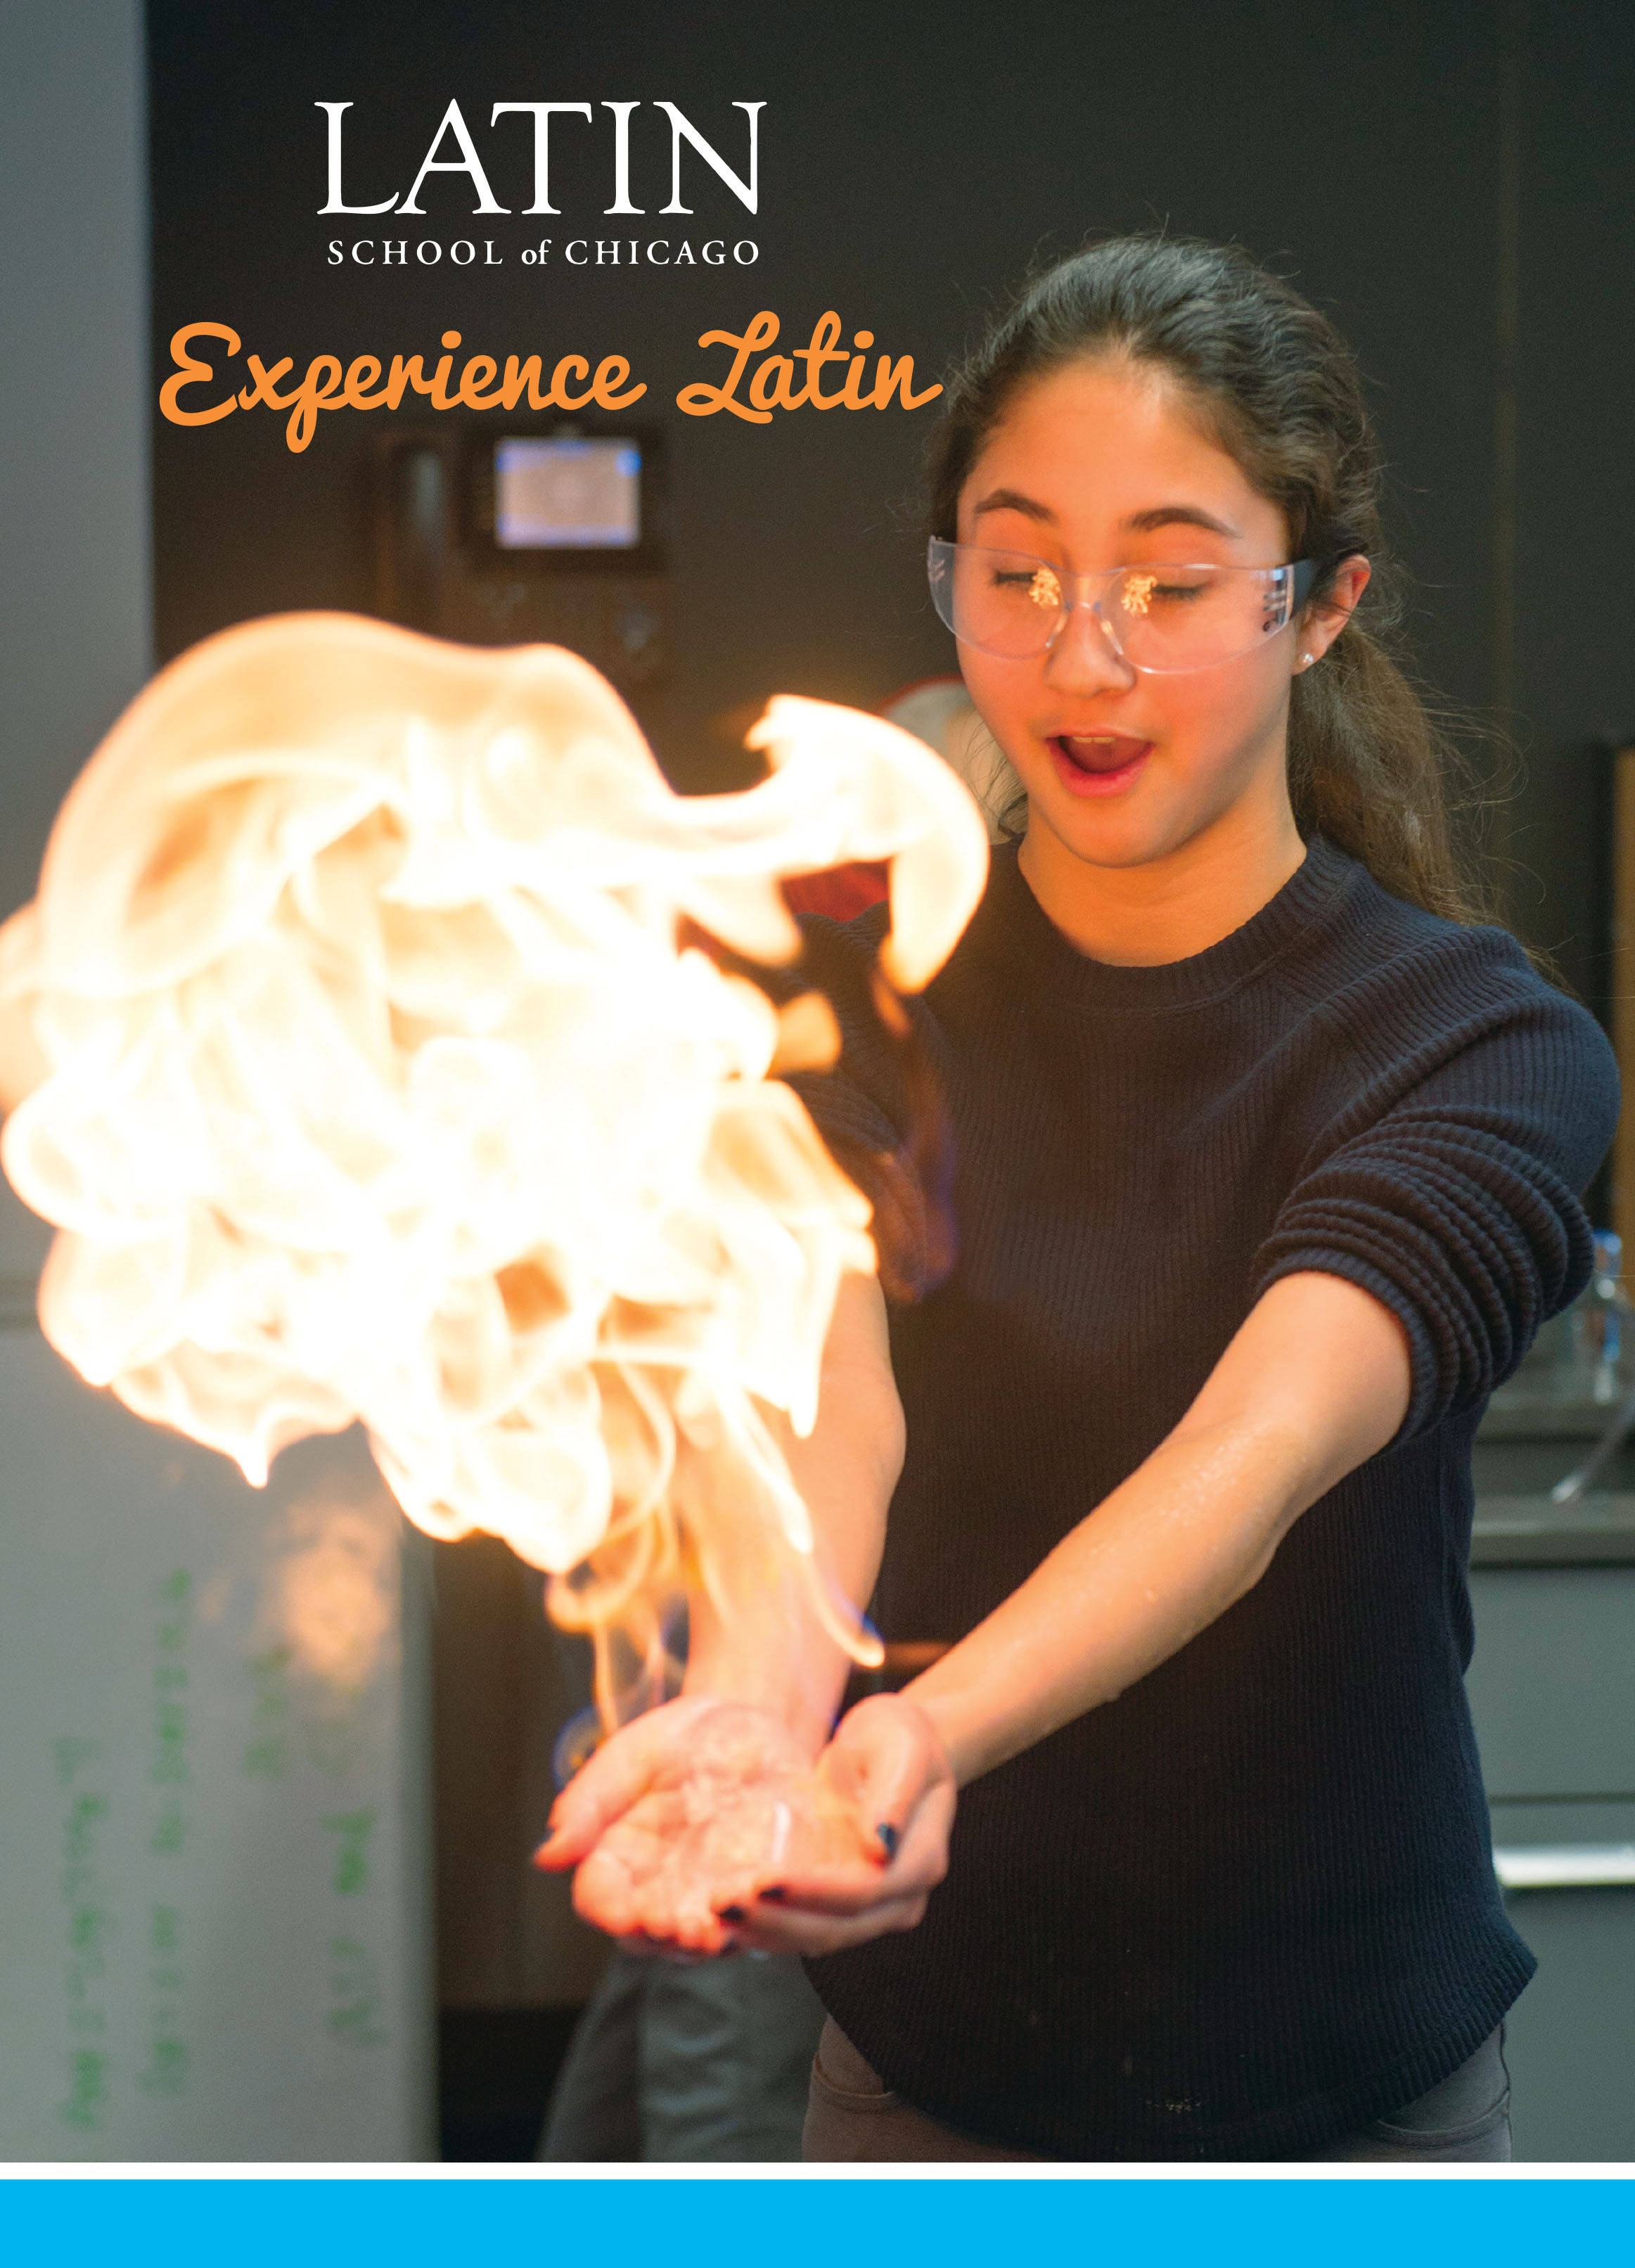 The brochure cover features an example of experiential learning at Latin. This photo is consistent throughout the Admissions materials.